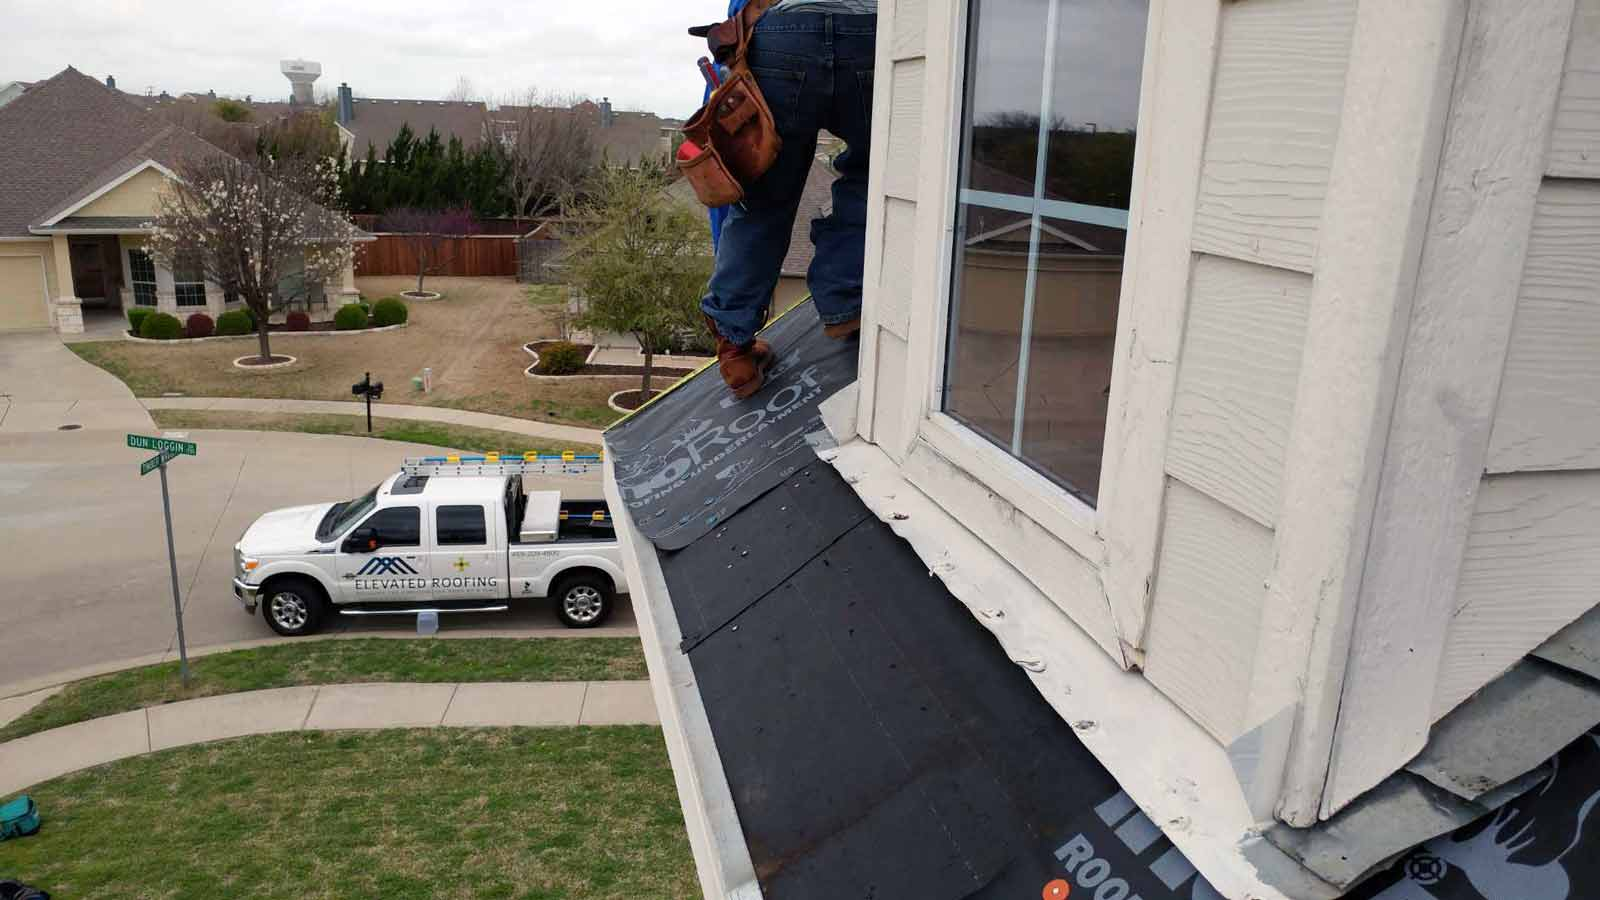 Elevated Roofing – Roof Replacement & Repair | Flower Mound